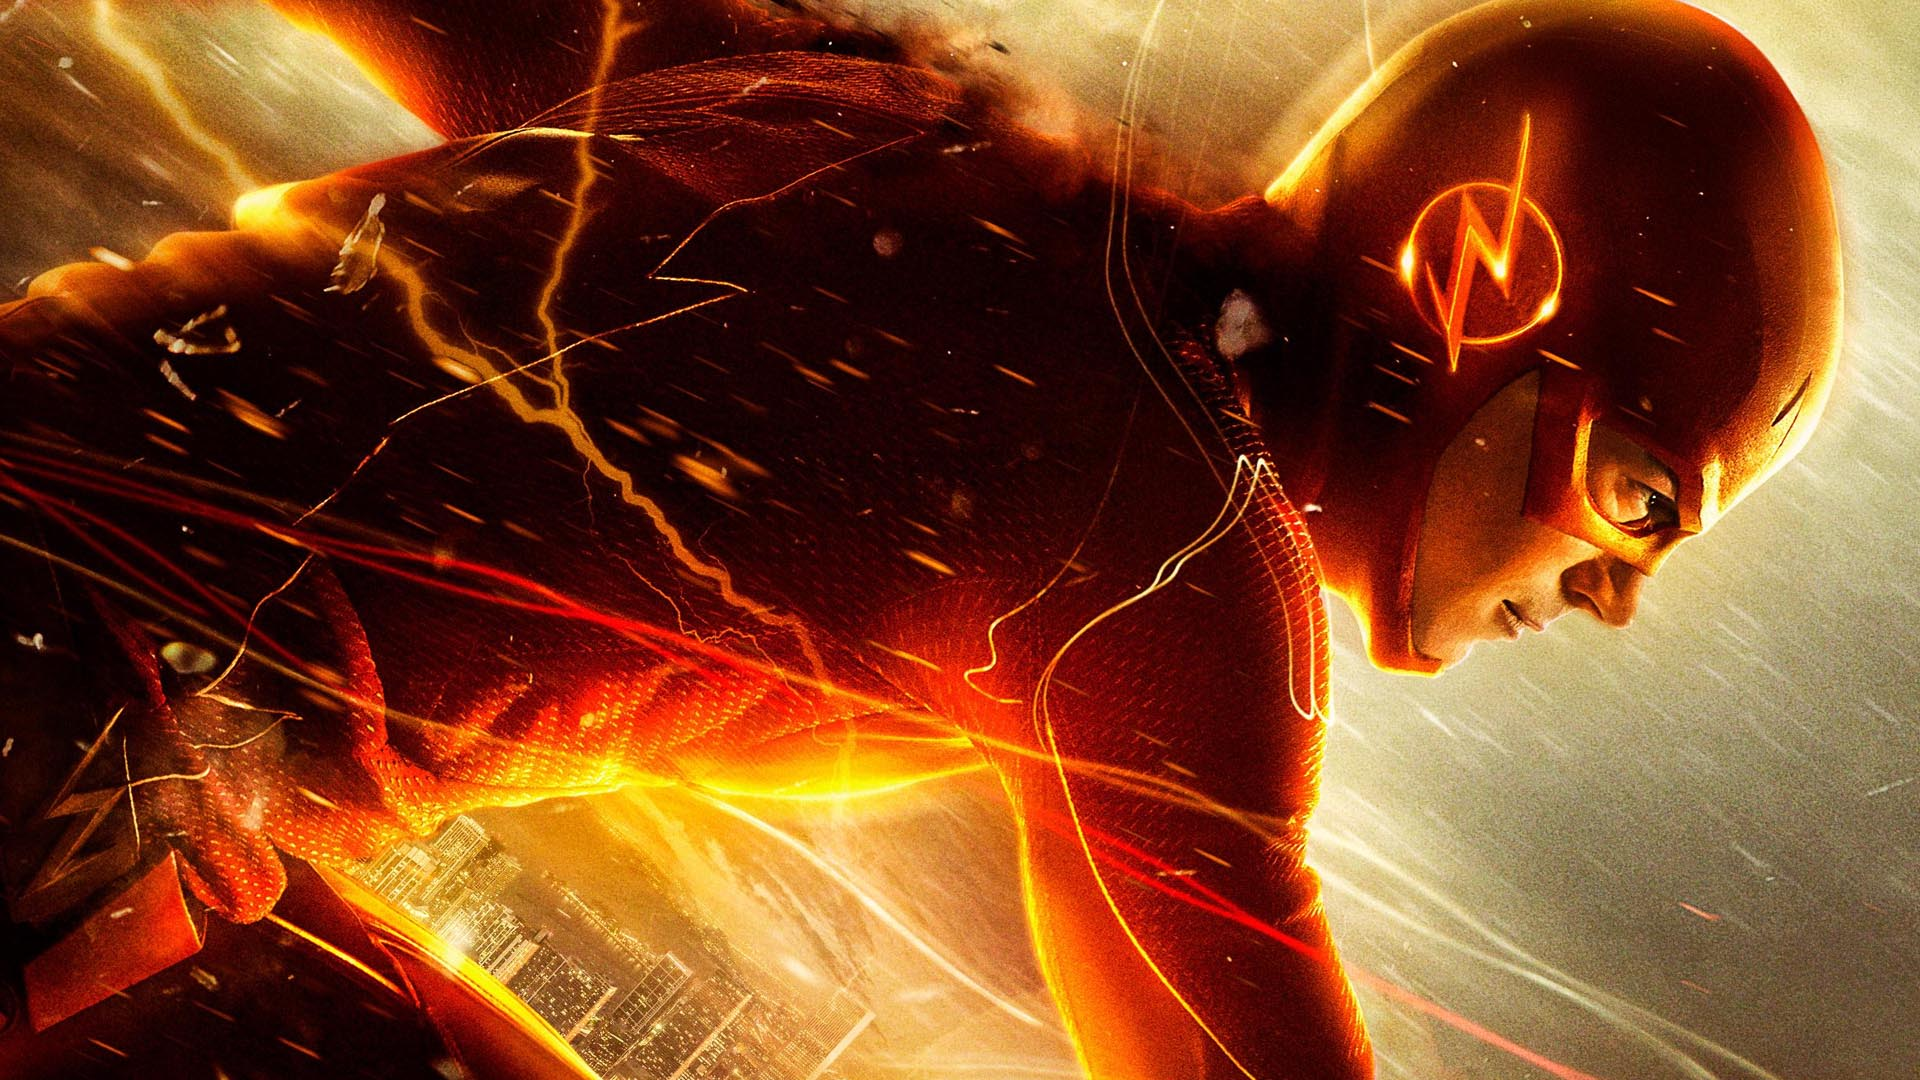 the flash cw wallpaper - wallpapersafari